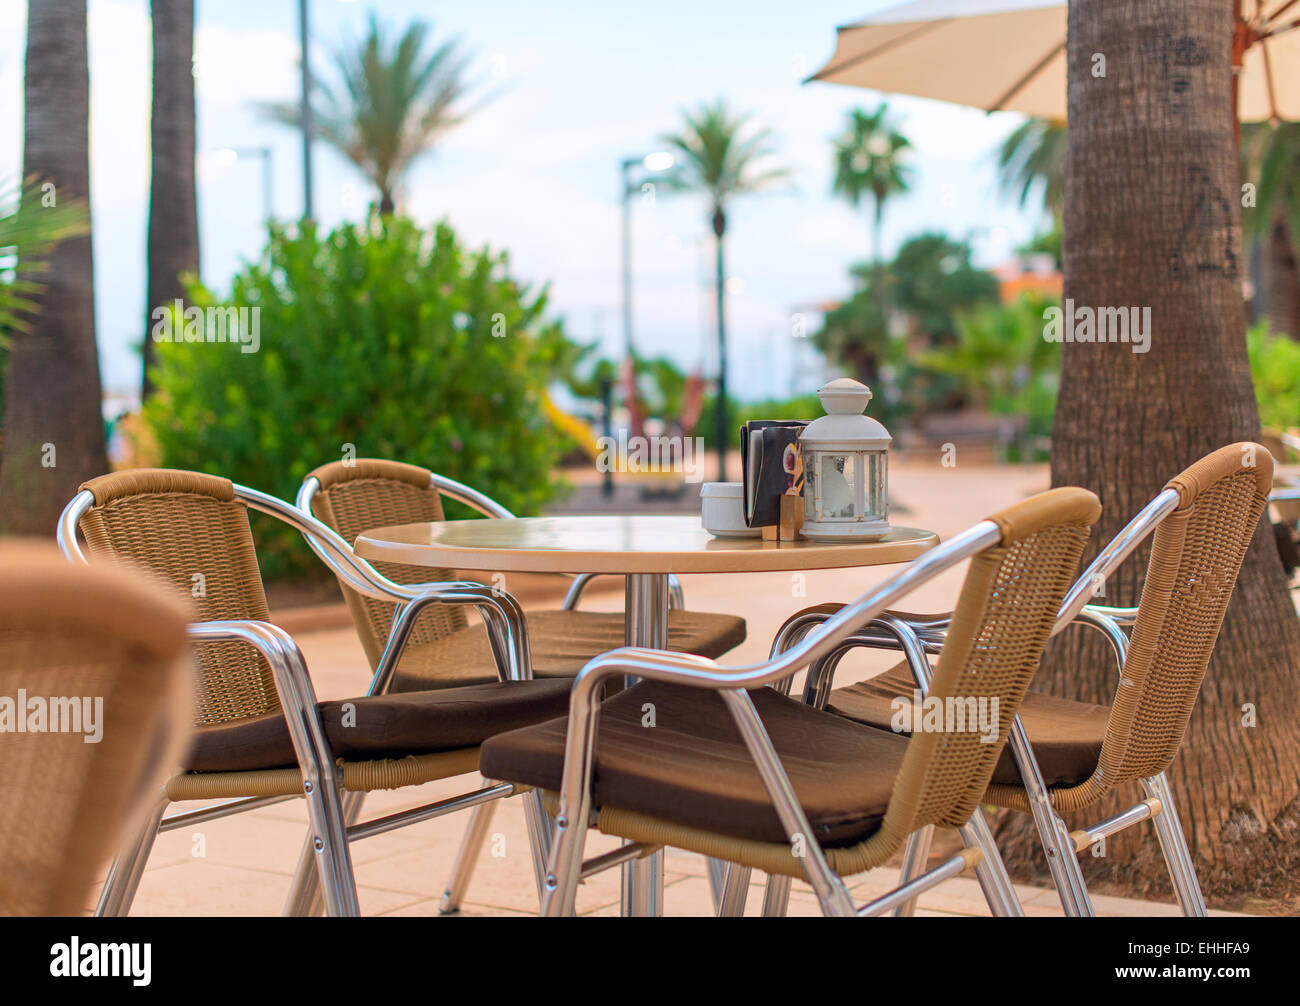 Mediterranean Cafe Terrace Exterior With Chairs.